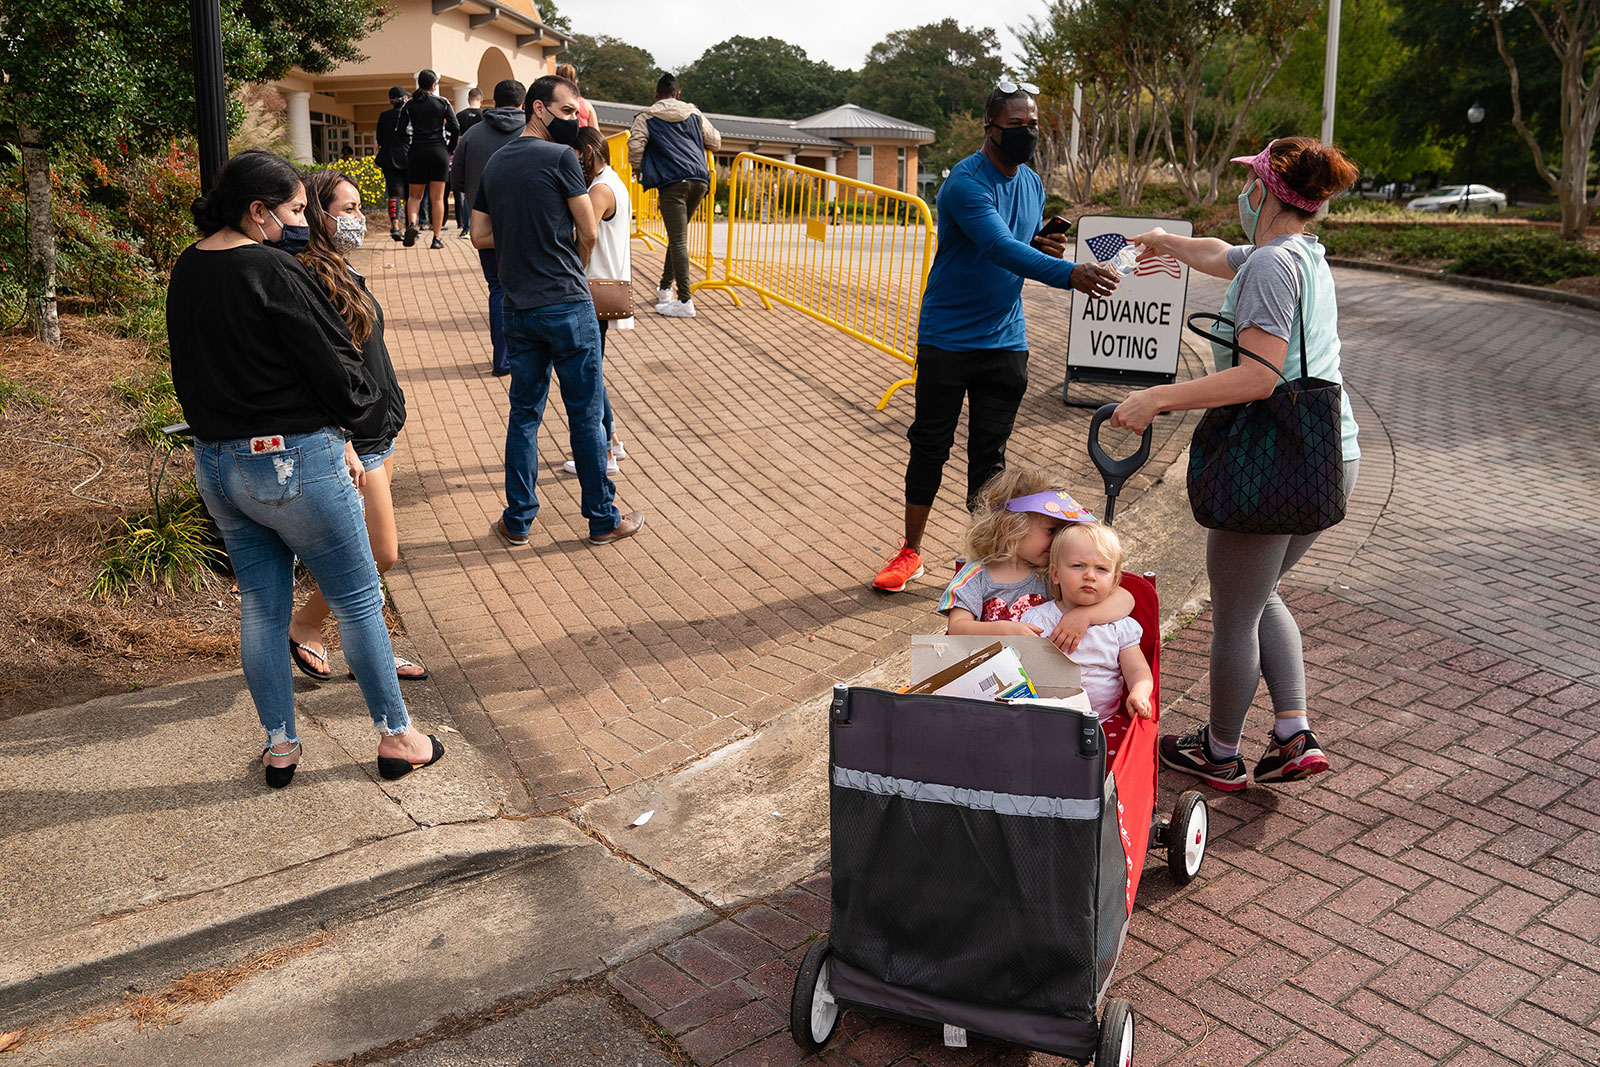 Megan Dominy, right, offers water and snacks to people waiting in line to vote in Smyrna, Georgia, in October 2020.